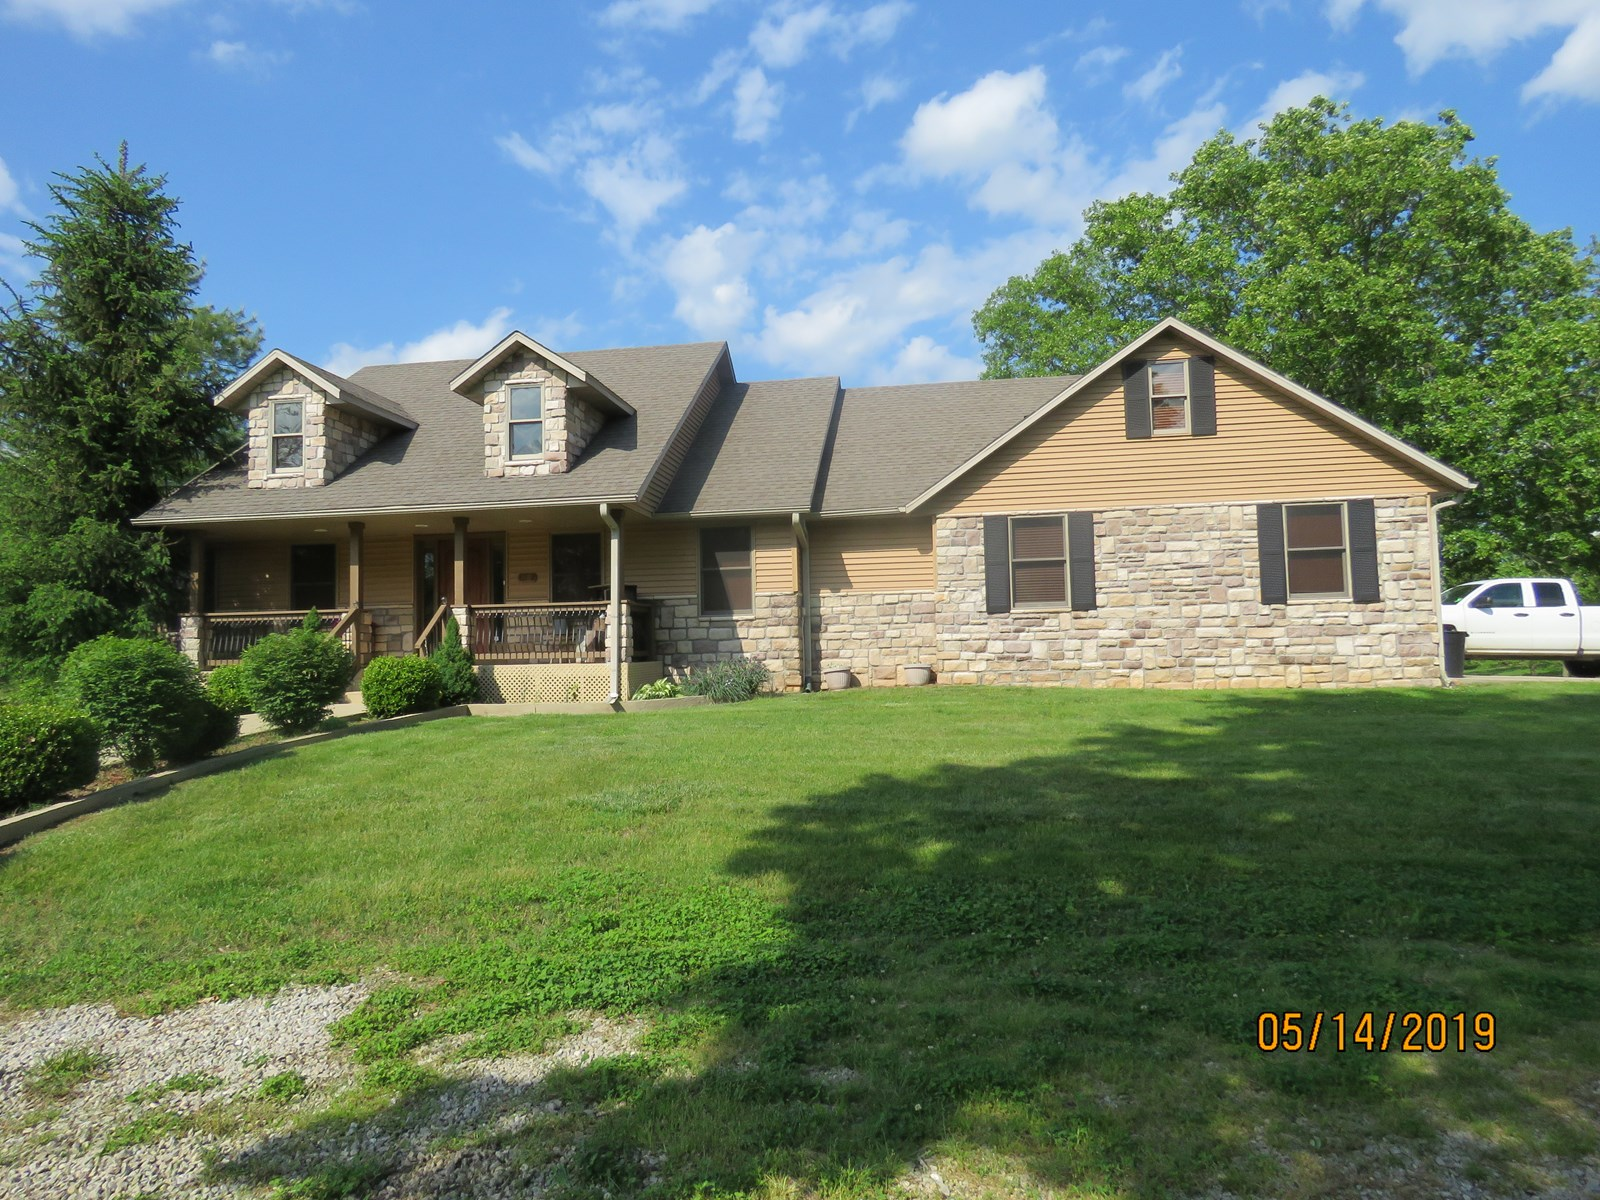 Custom home for sale on acreage, Ava mo